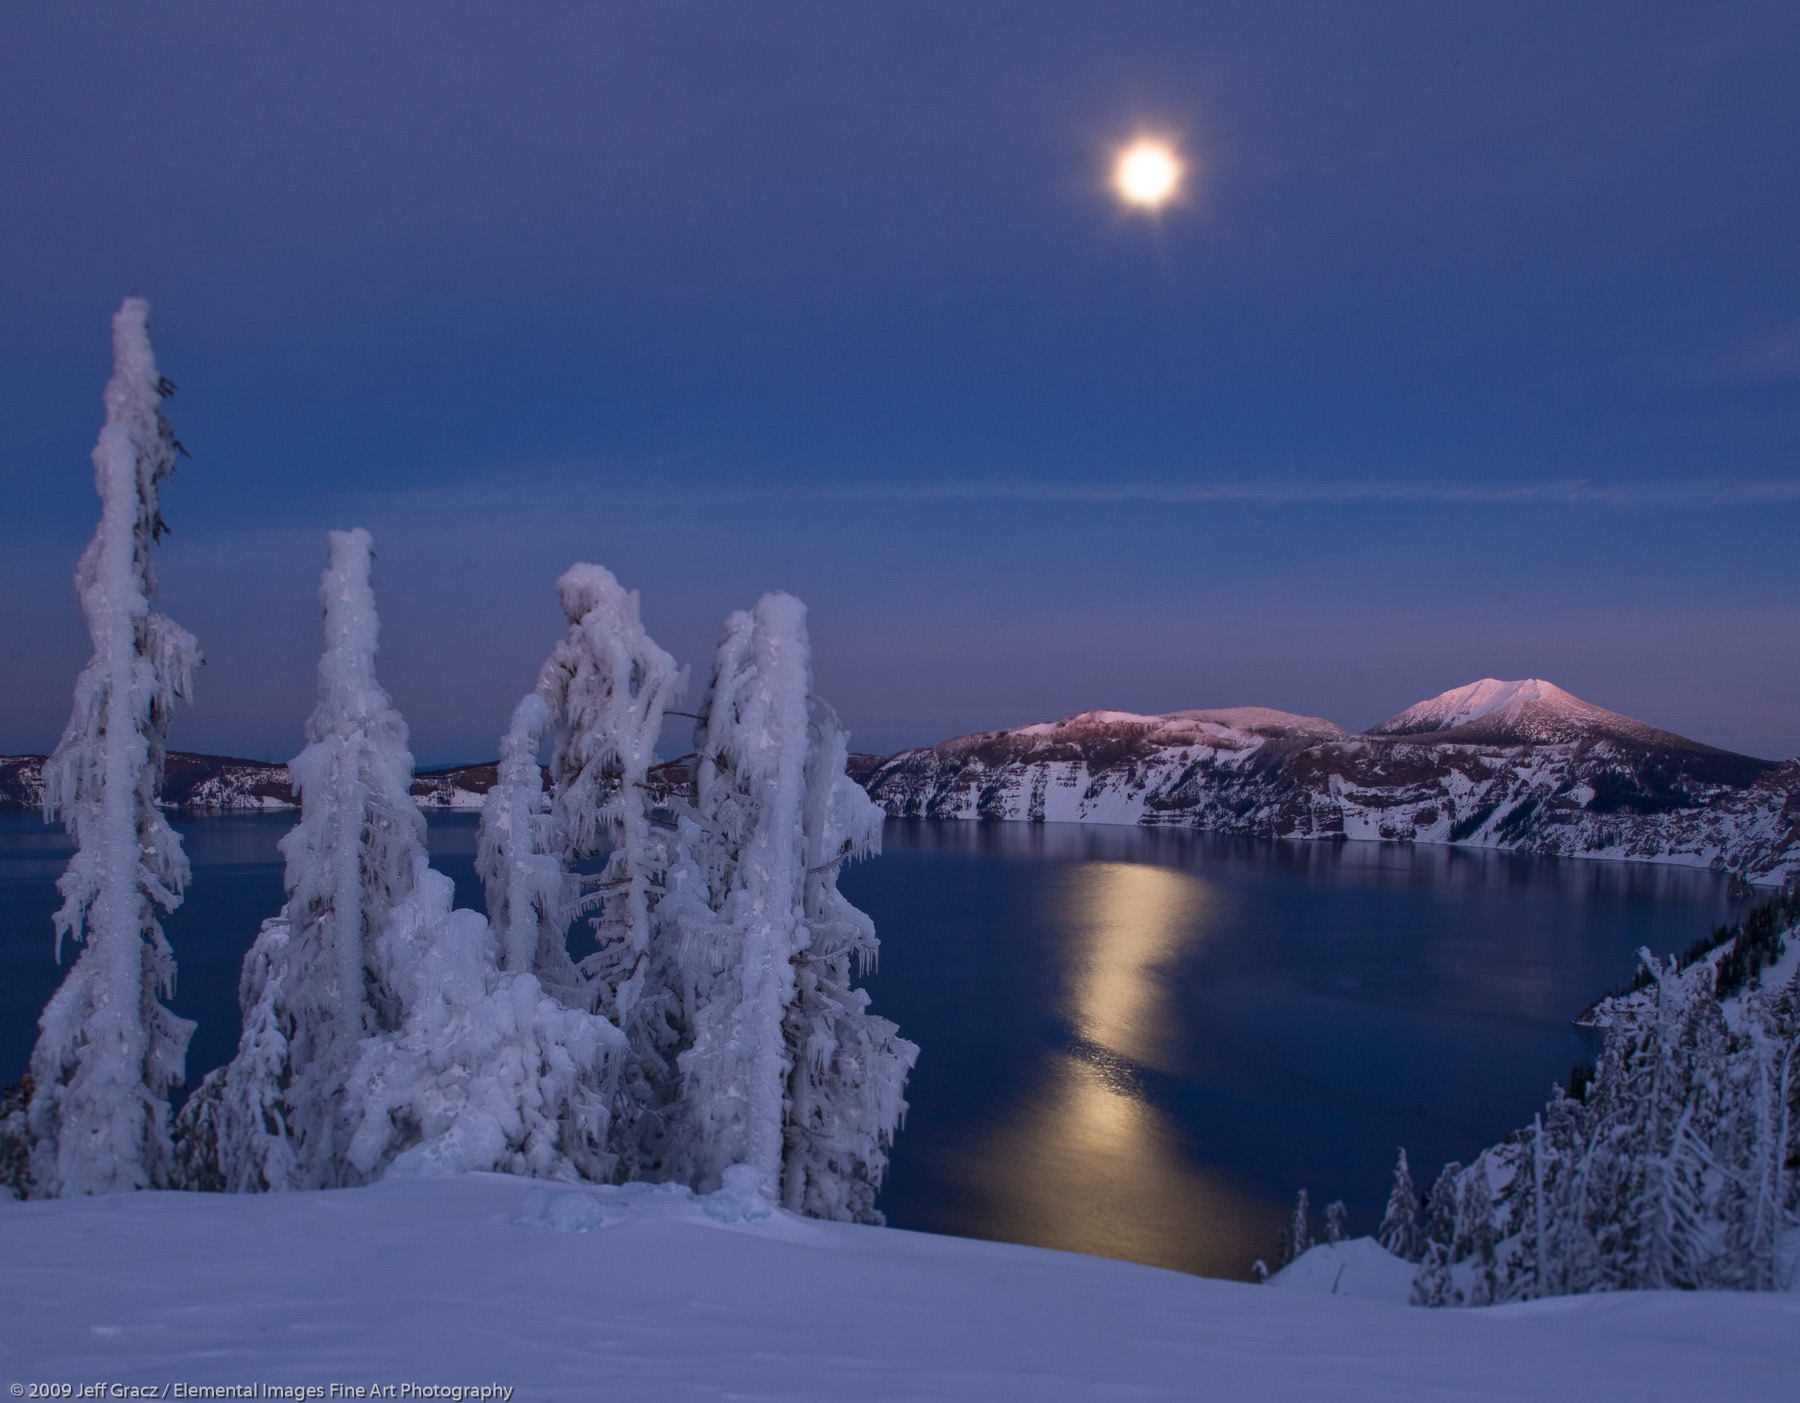 Evening light with full moon on Crater Lake | Crater Lake National Park | OR | USA - © © 2009 Jeff Gracz / Elemental Images Fine Art Photography - All Rights Reserved Worldwide